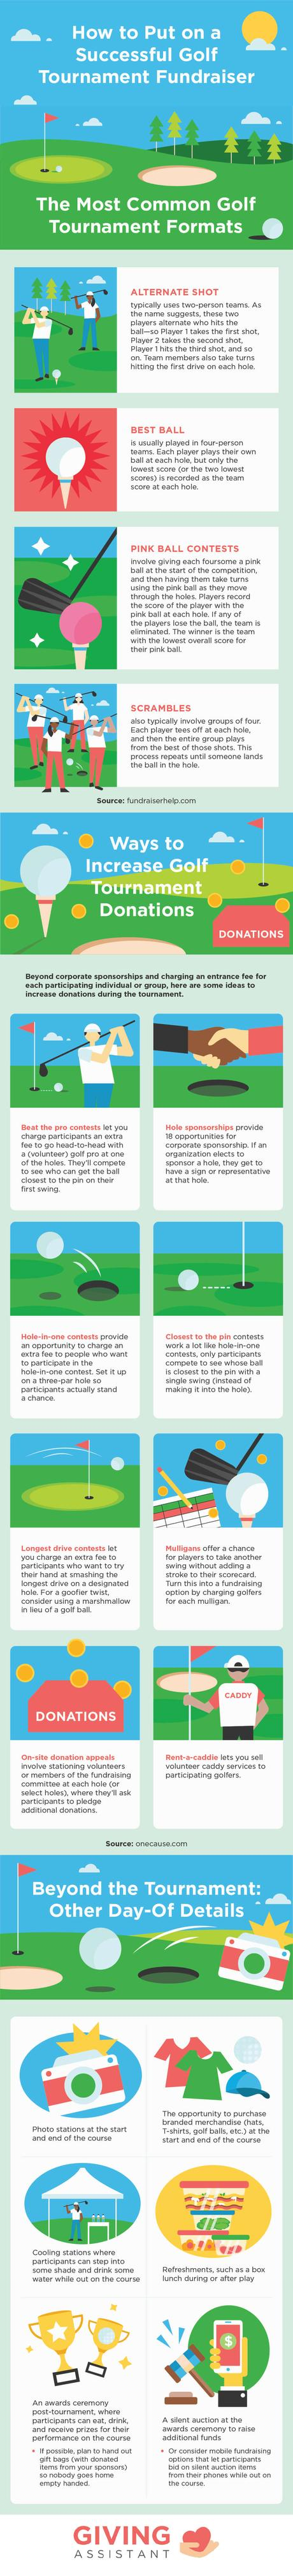 How To Run A Successful Golf Fundraiser in 7 Steps